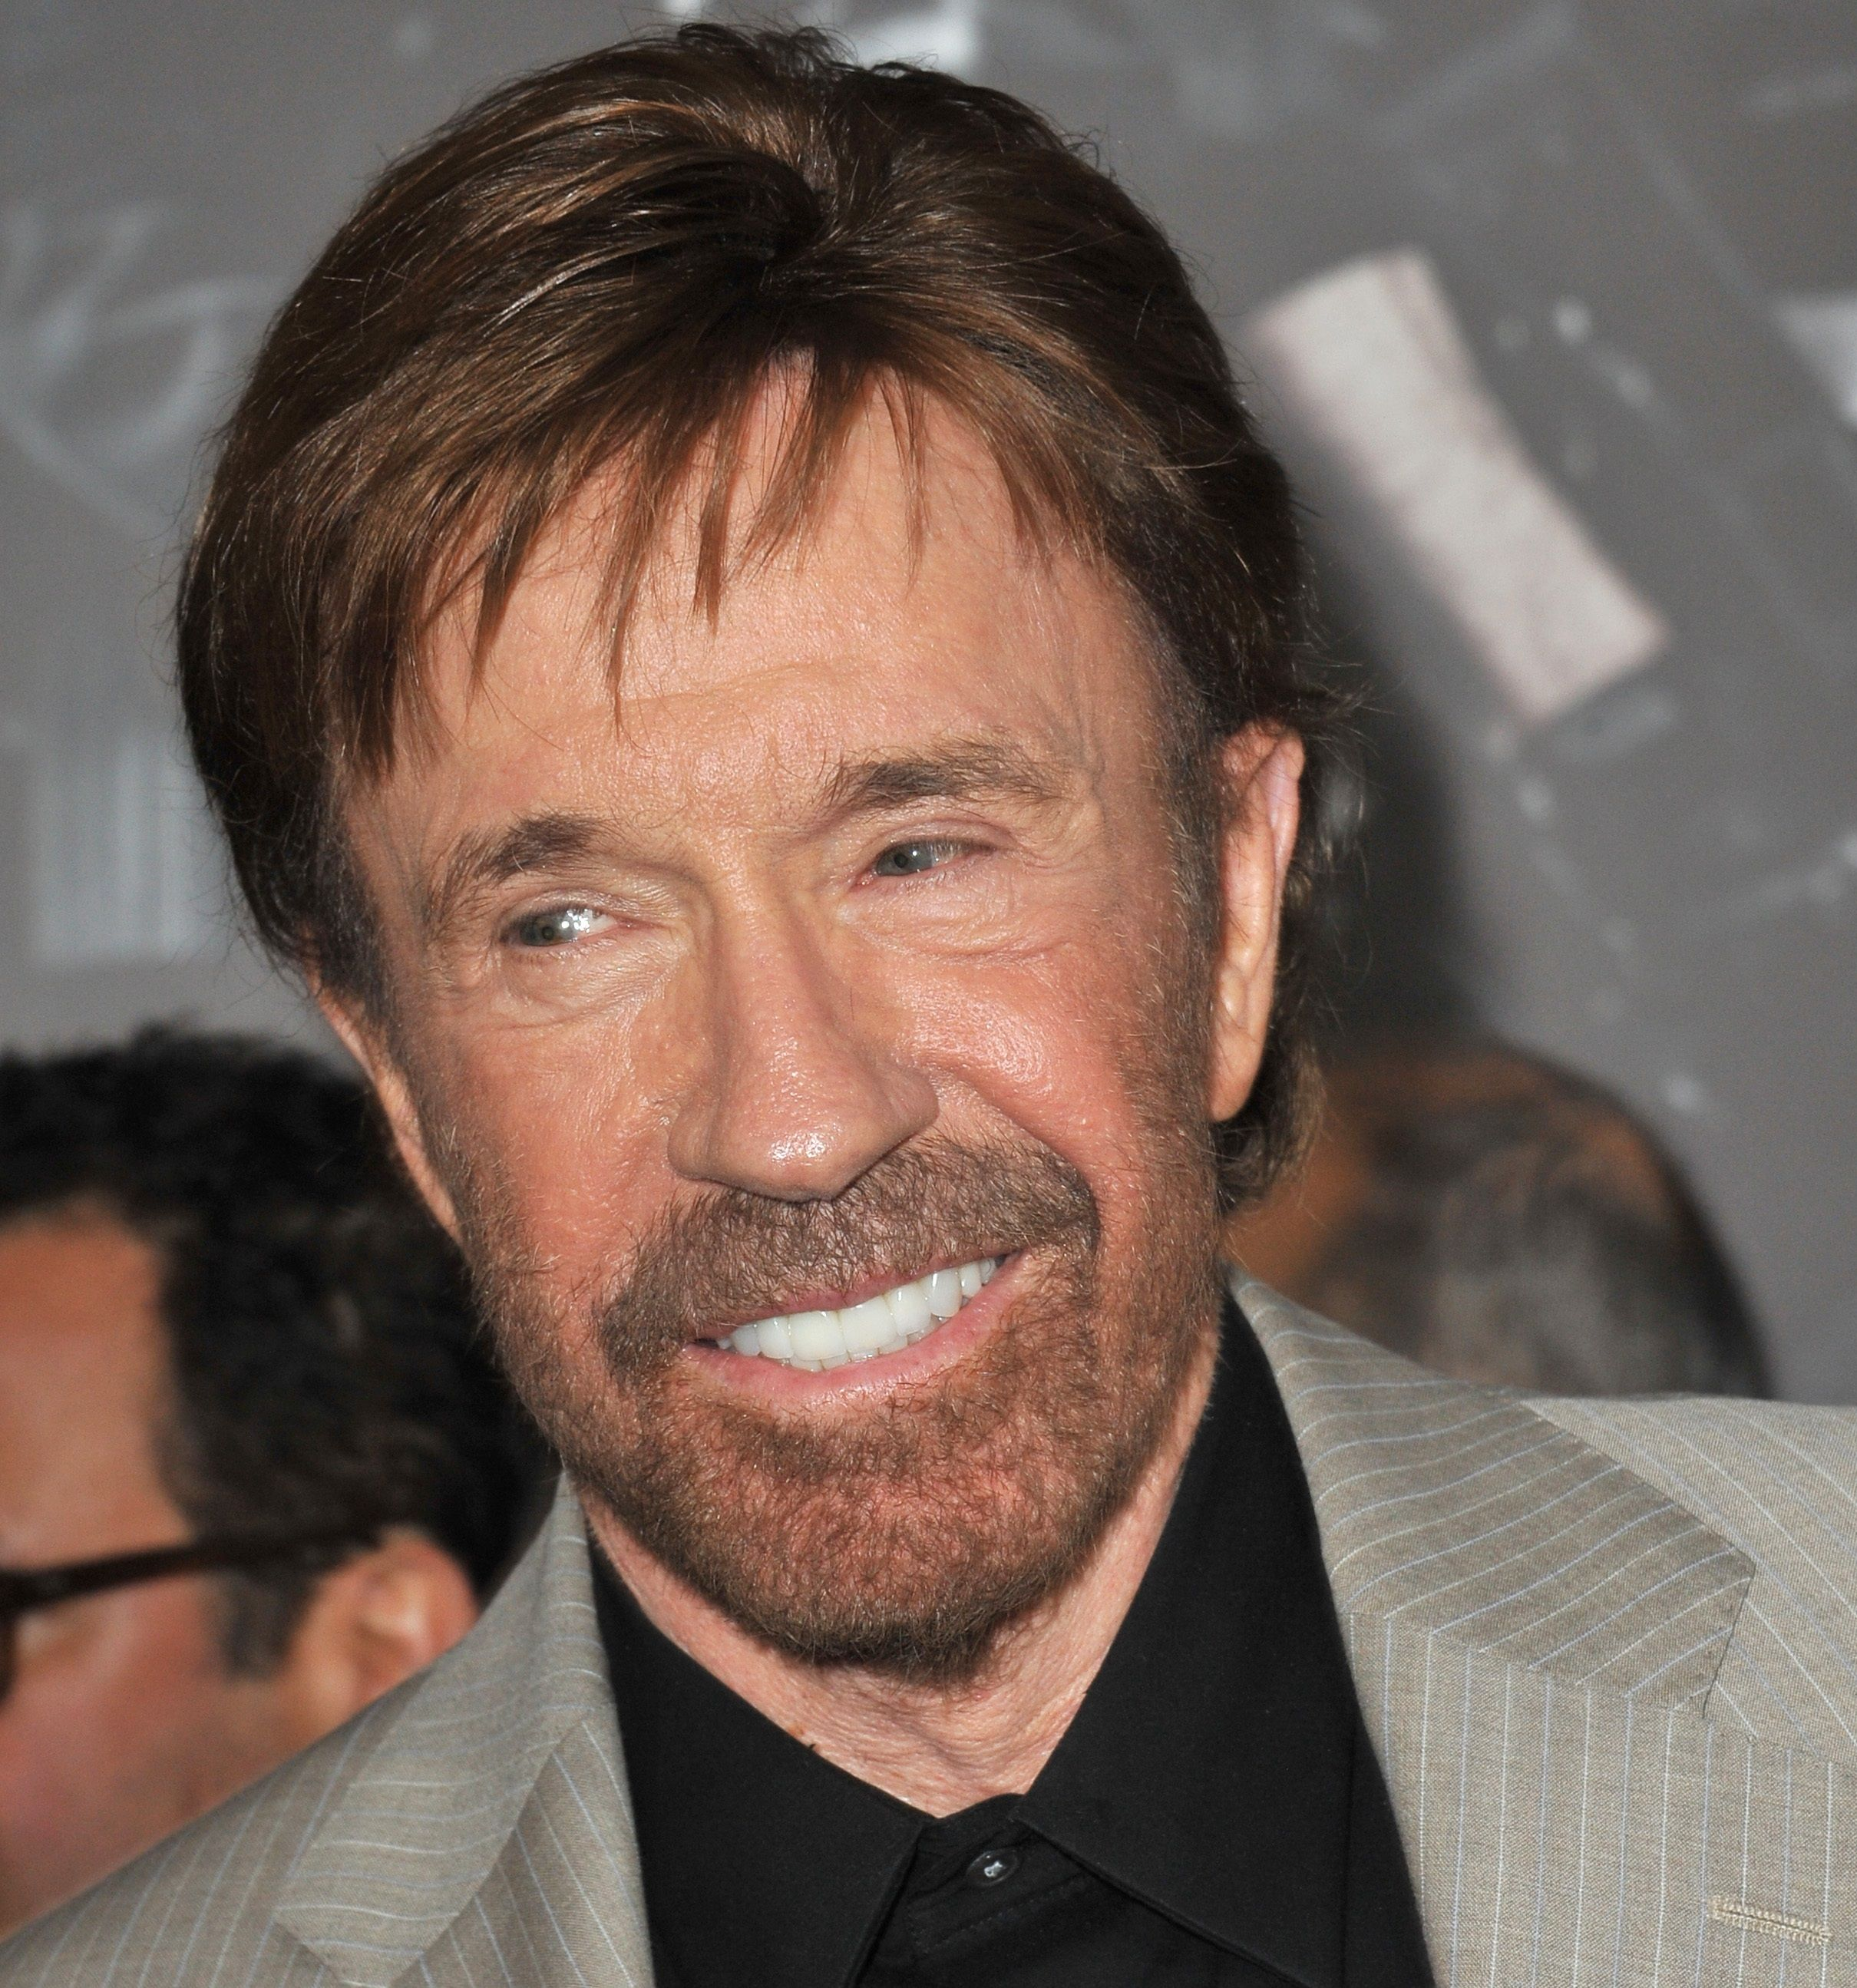 10. Chuck Norris is Actually Named Carlos Ray Norris